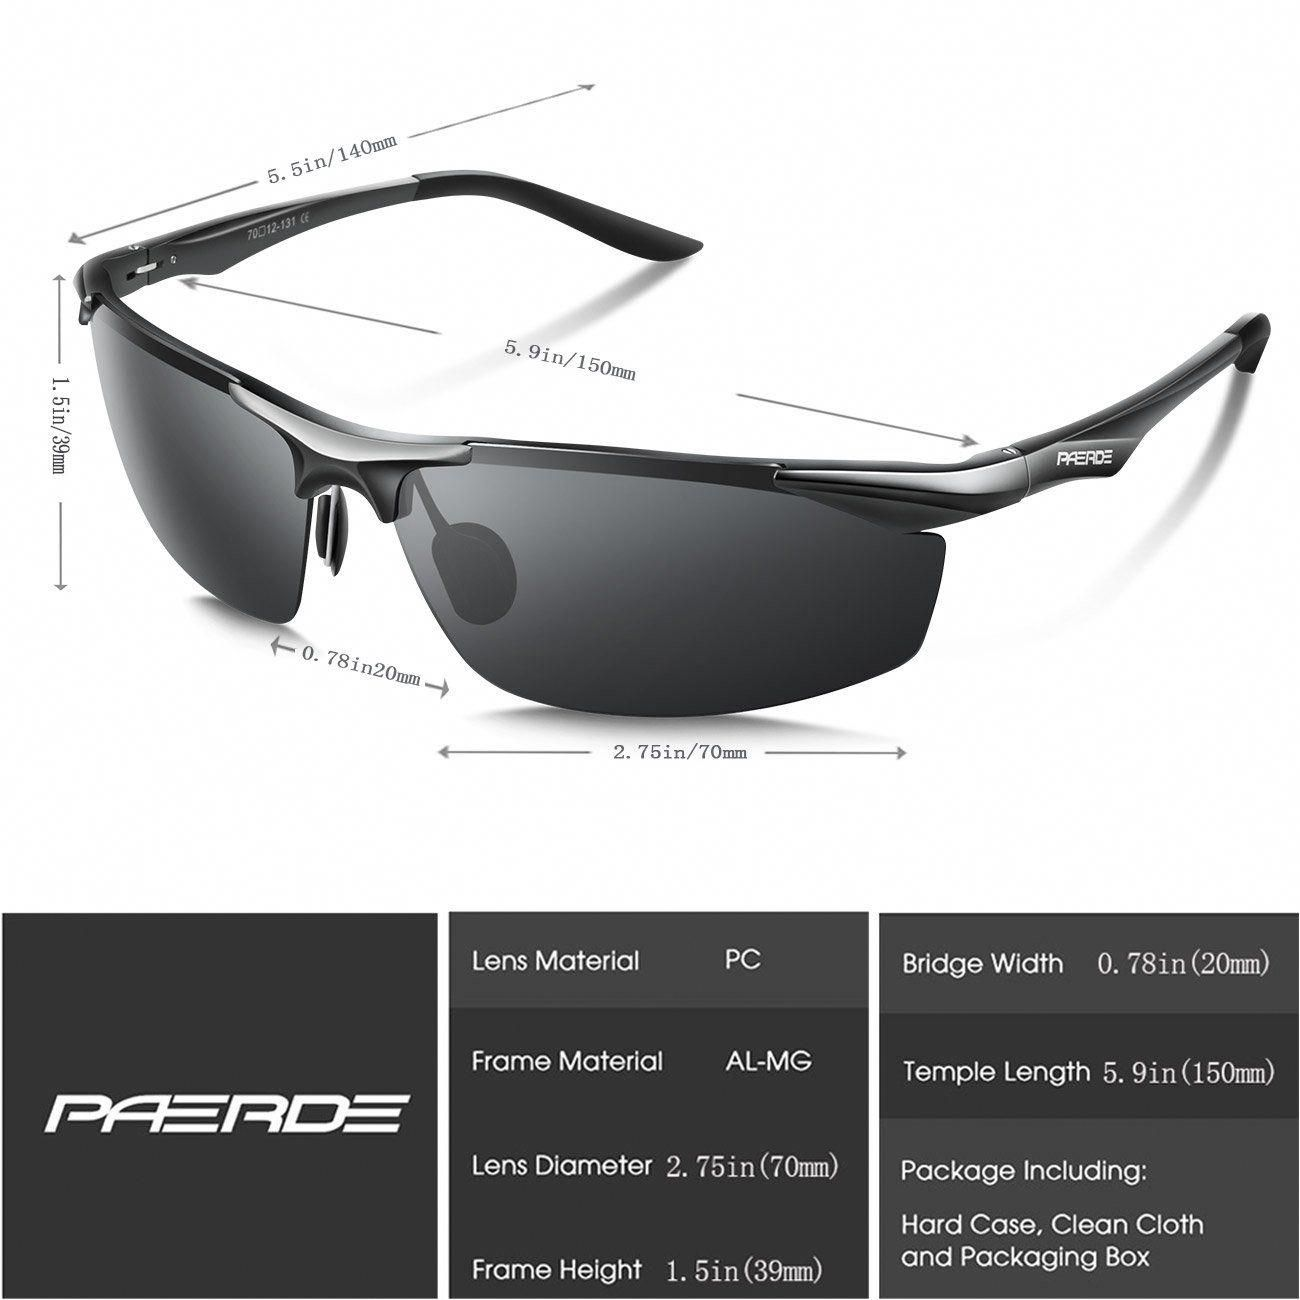 6610856a4f3 Men Golf Clothing - PAERDE Mens Sports Style Polarized Sunglasses for Men  Driving Fishing Cycling Golf Running AlMg Metal Frame Ultra Light Glasses  Black   ...